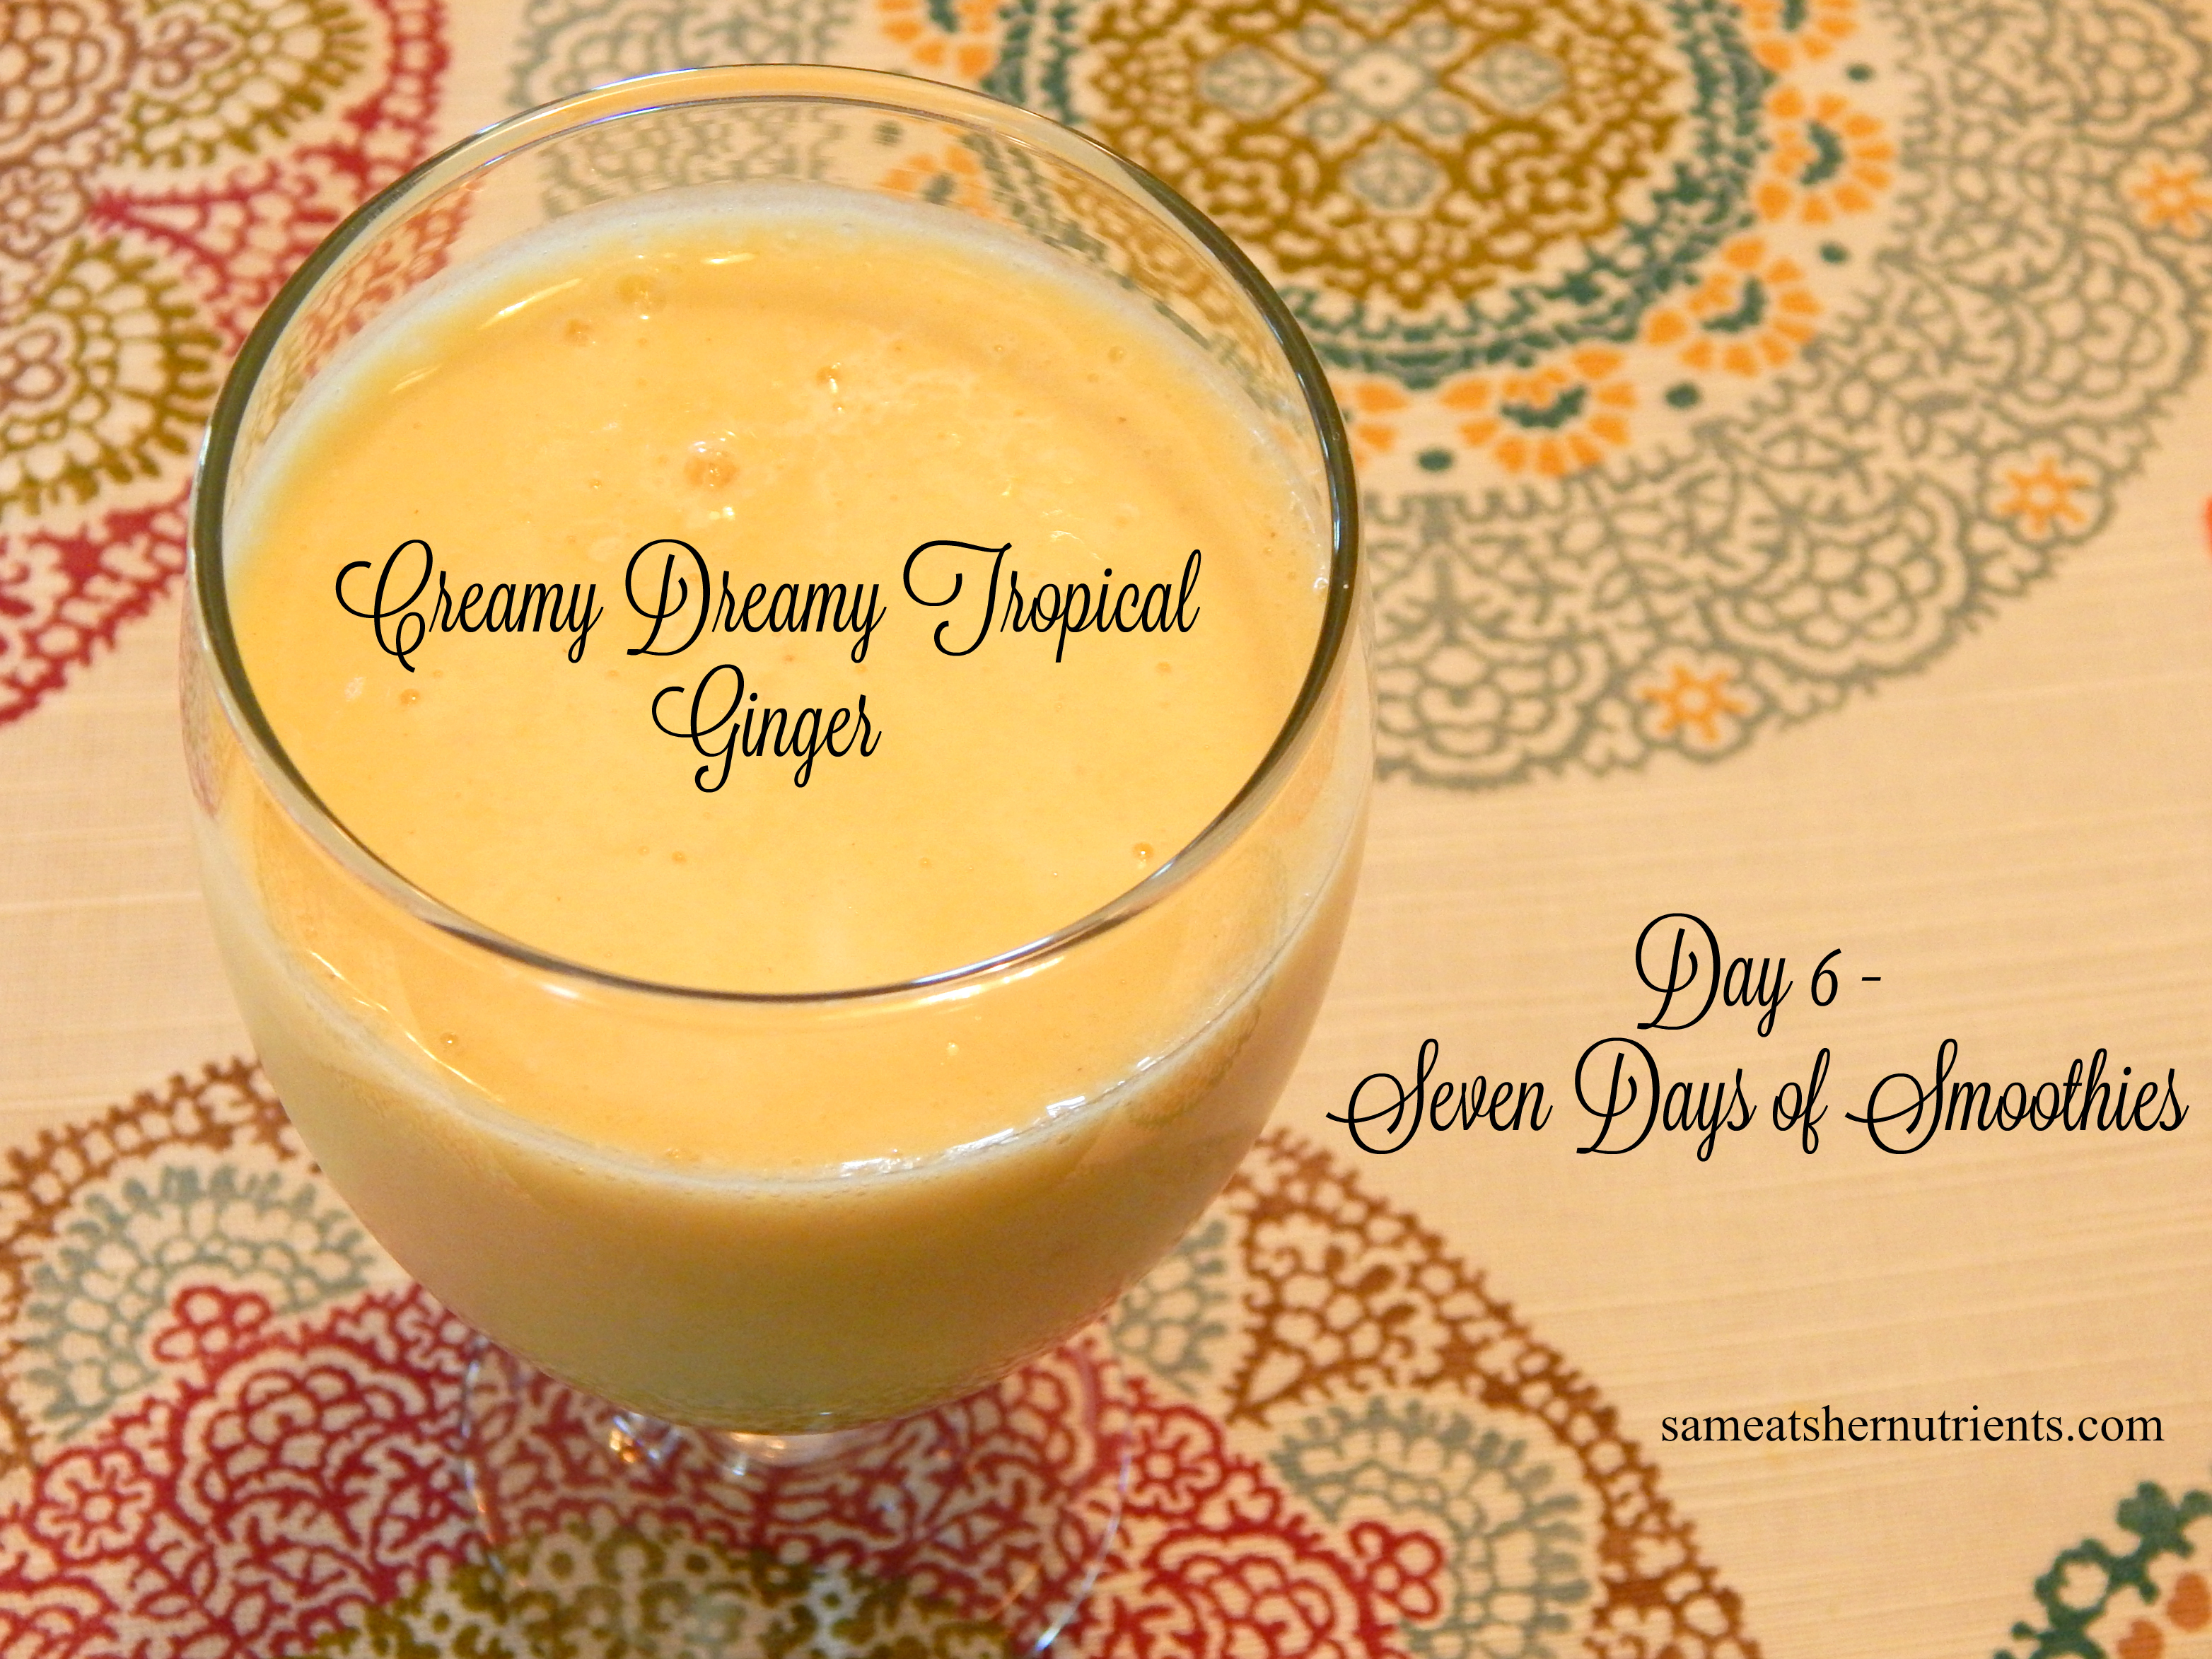 Creamy Dreamy Tropical Ginger - Seven Days of Smoothies - Day 6